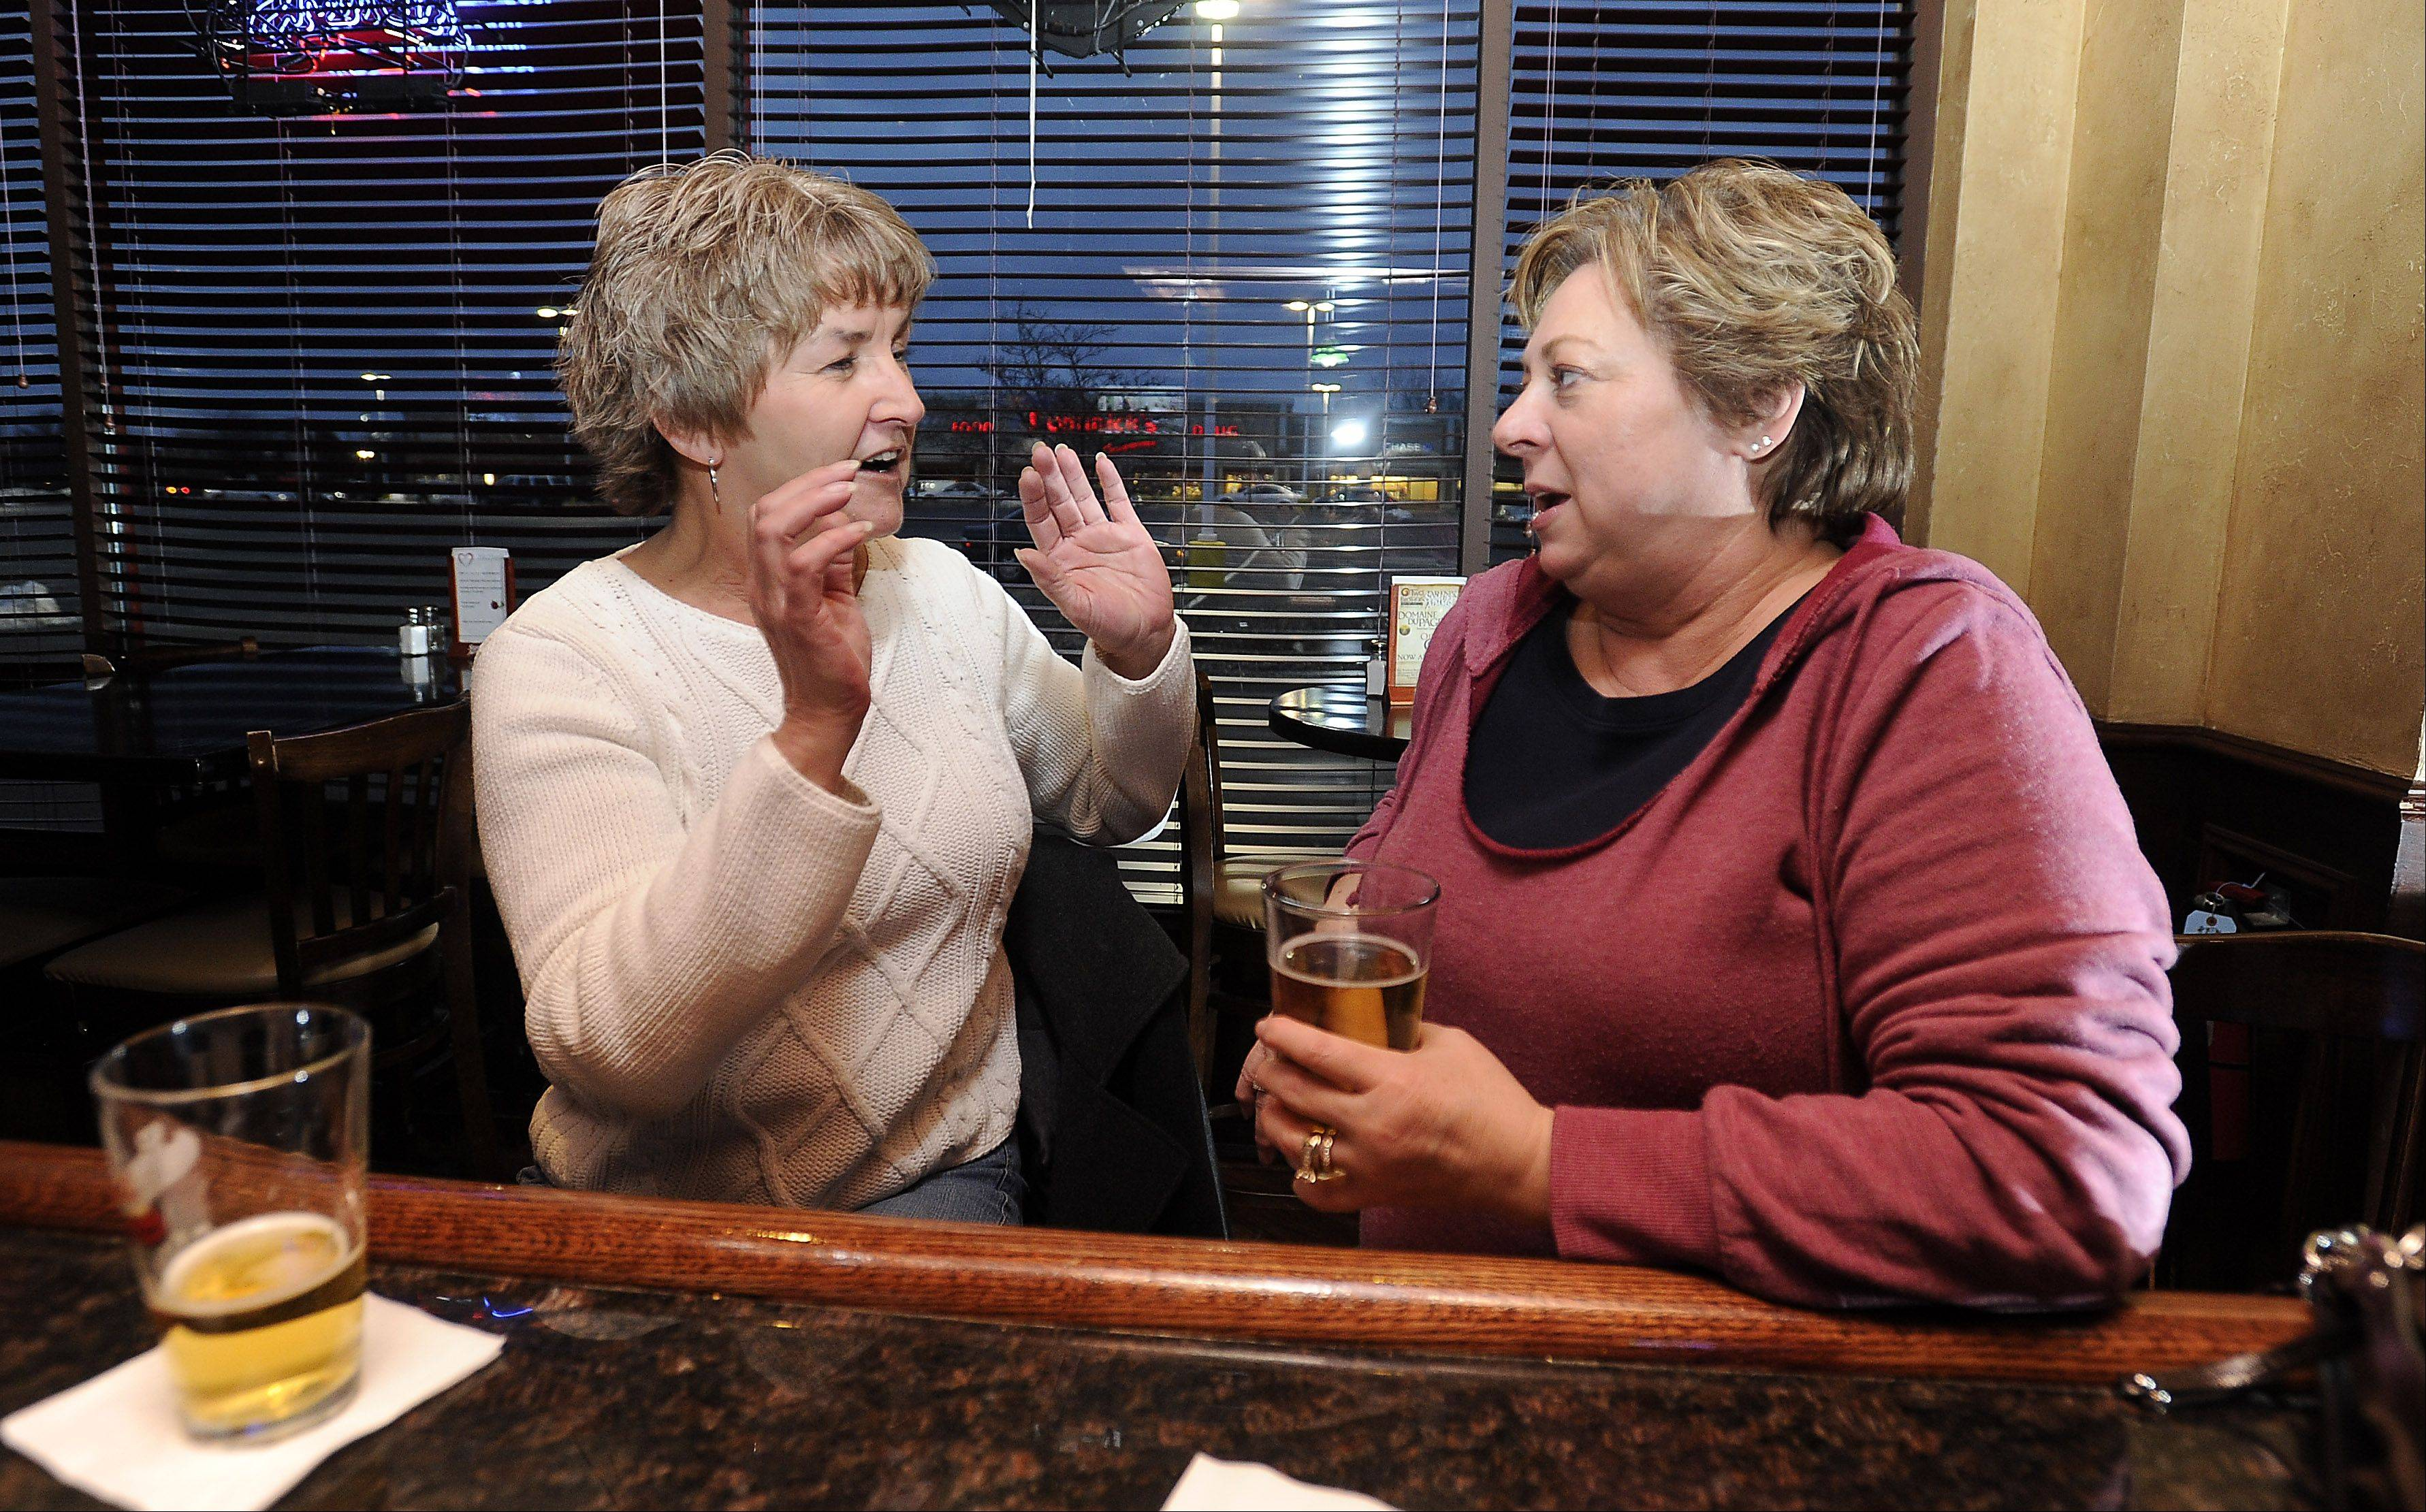 Jackie Fish, left, of DeKalb has a drink with her friend Sue Dierking of Bartlett at McMae's Tavern & Grill in Bartlett.